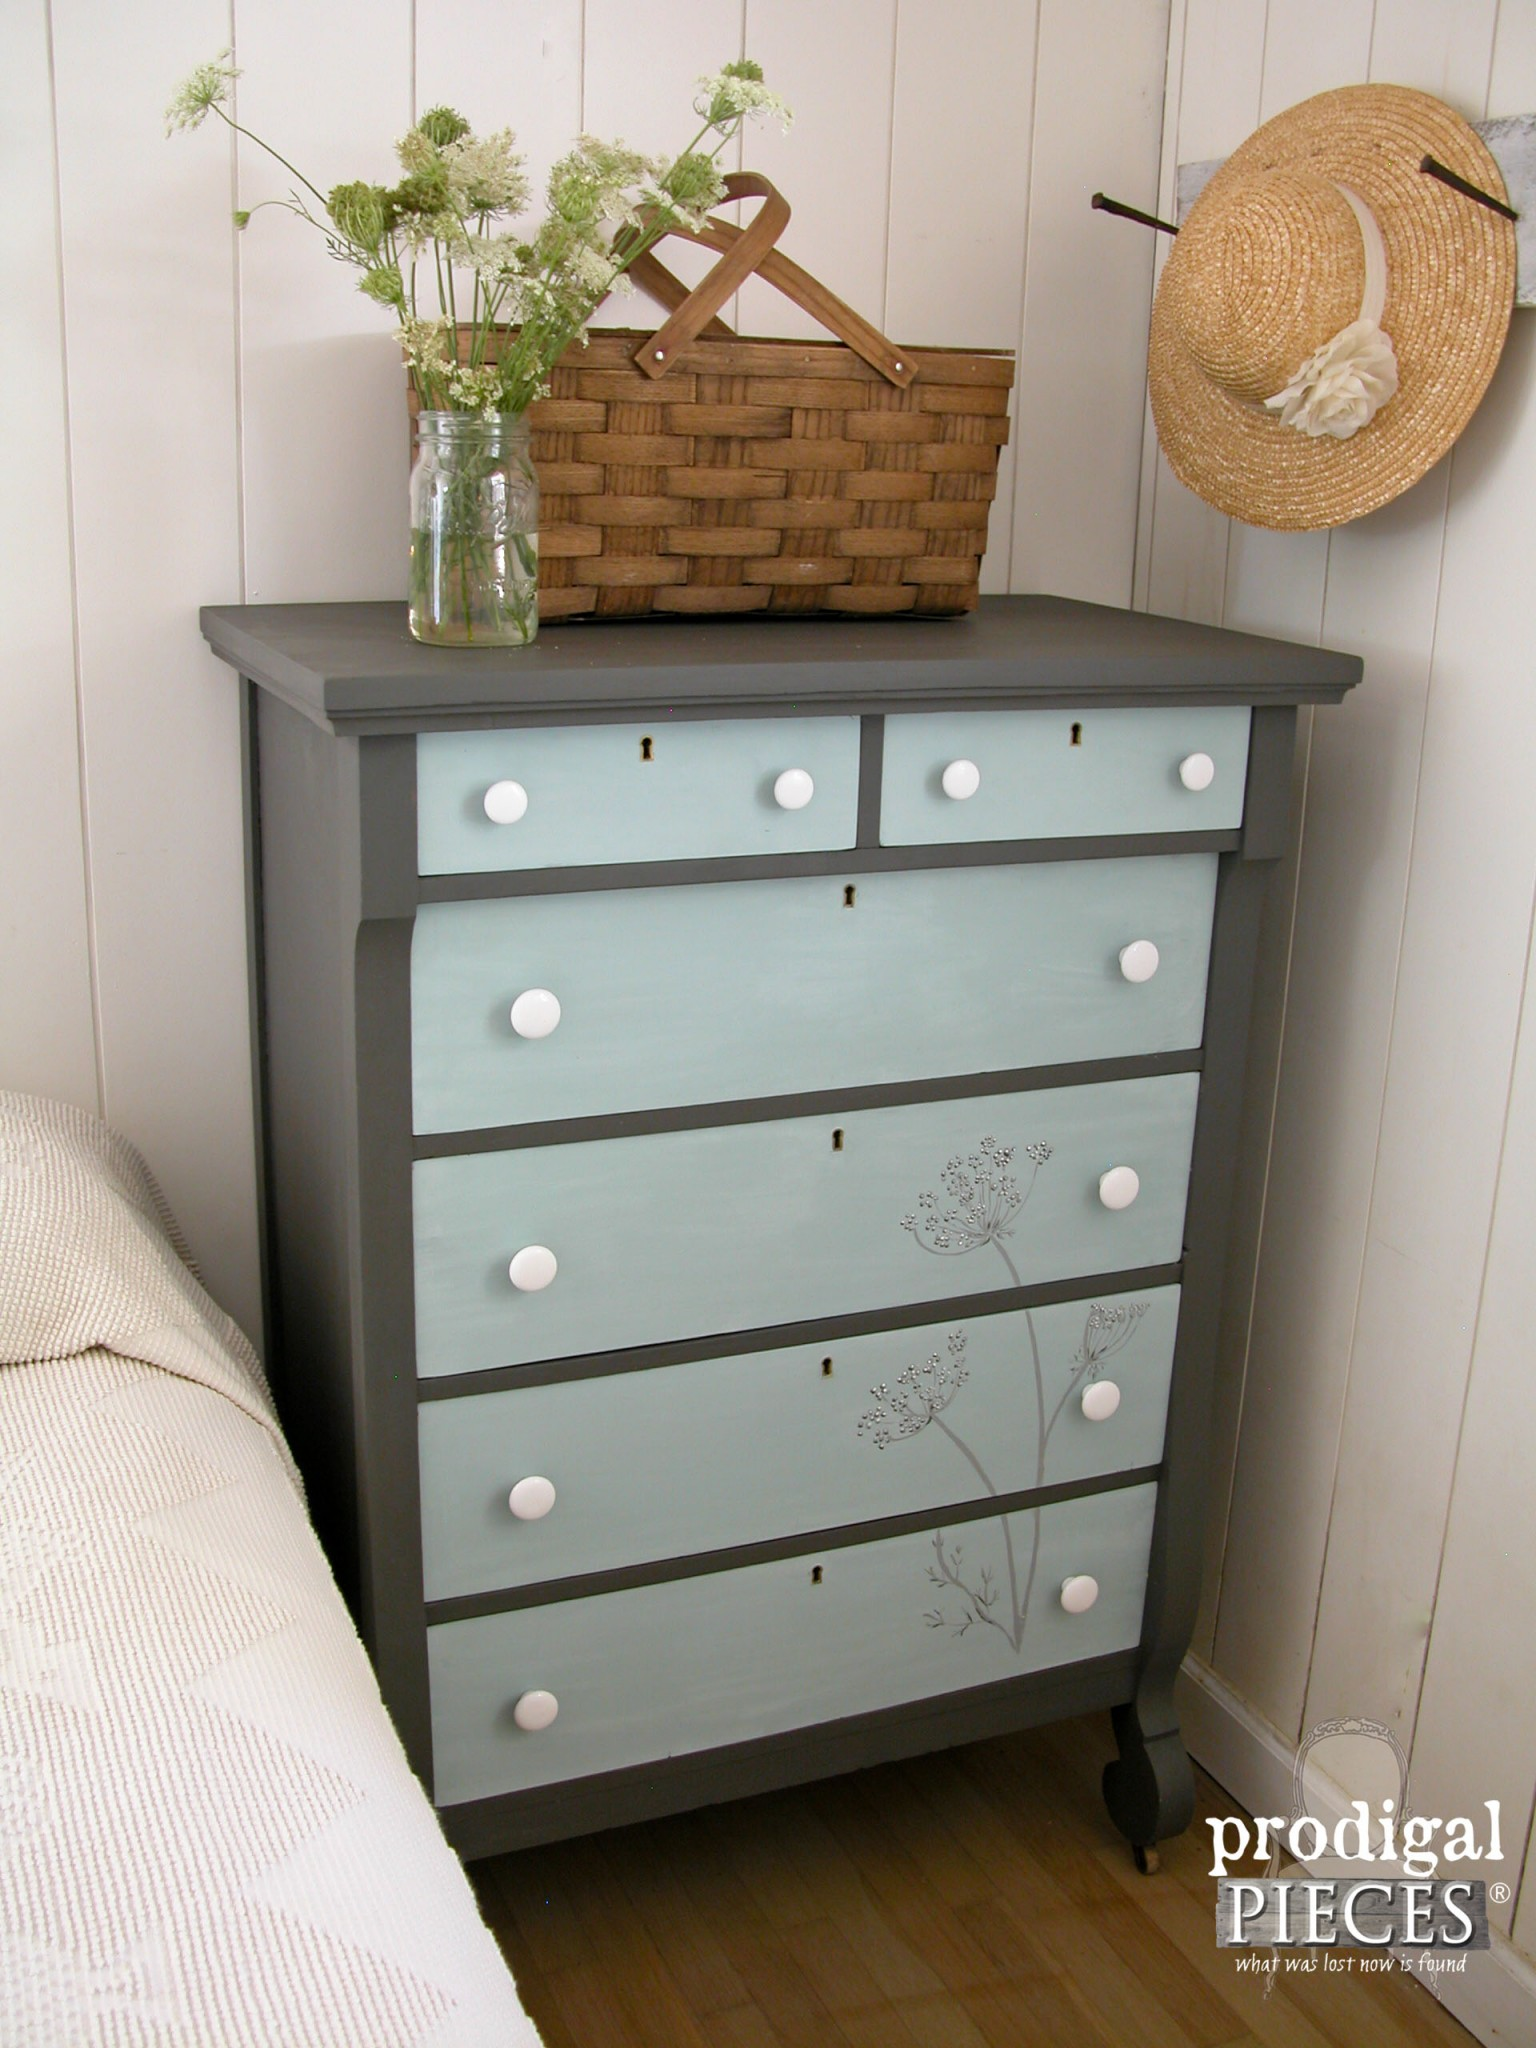 Farmhouse Style Hand Painted Empire Chest by Prodigal Pieces | www.prodigalpieces.com